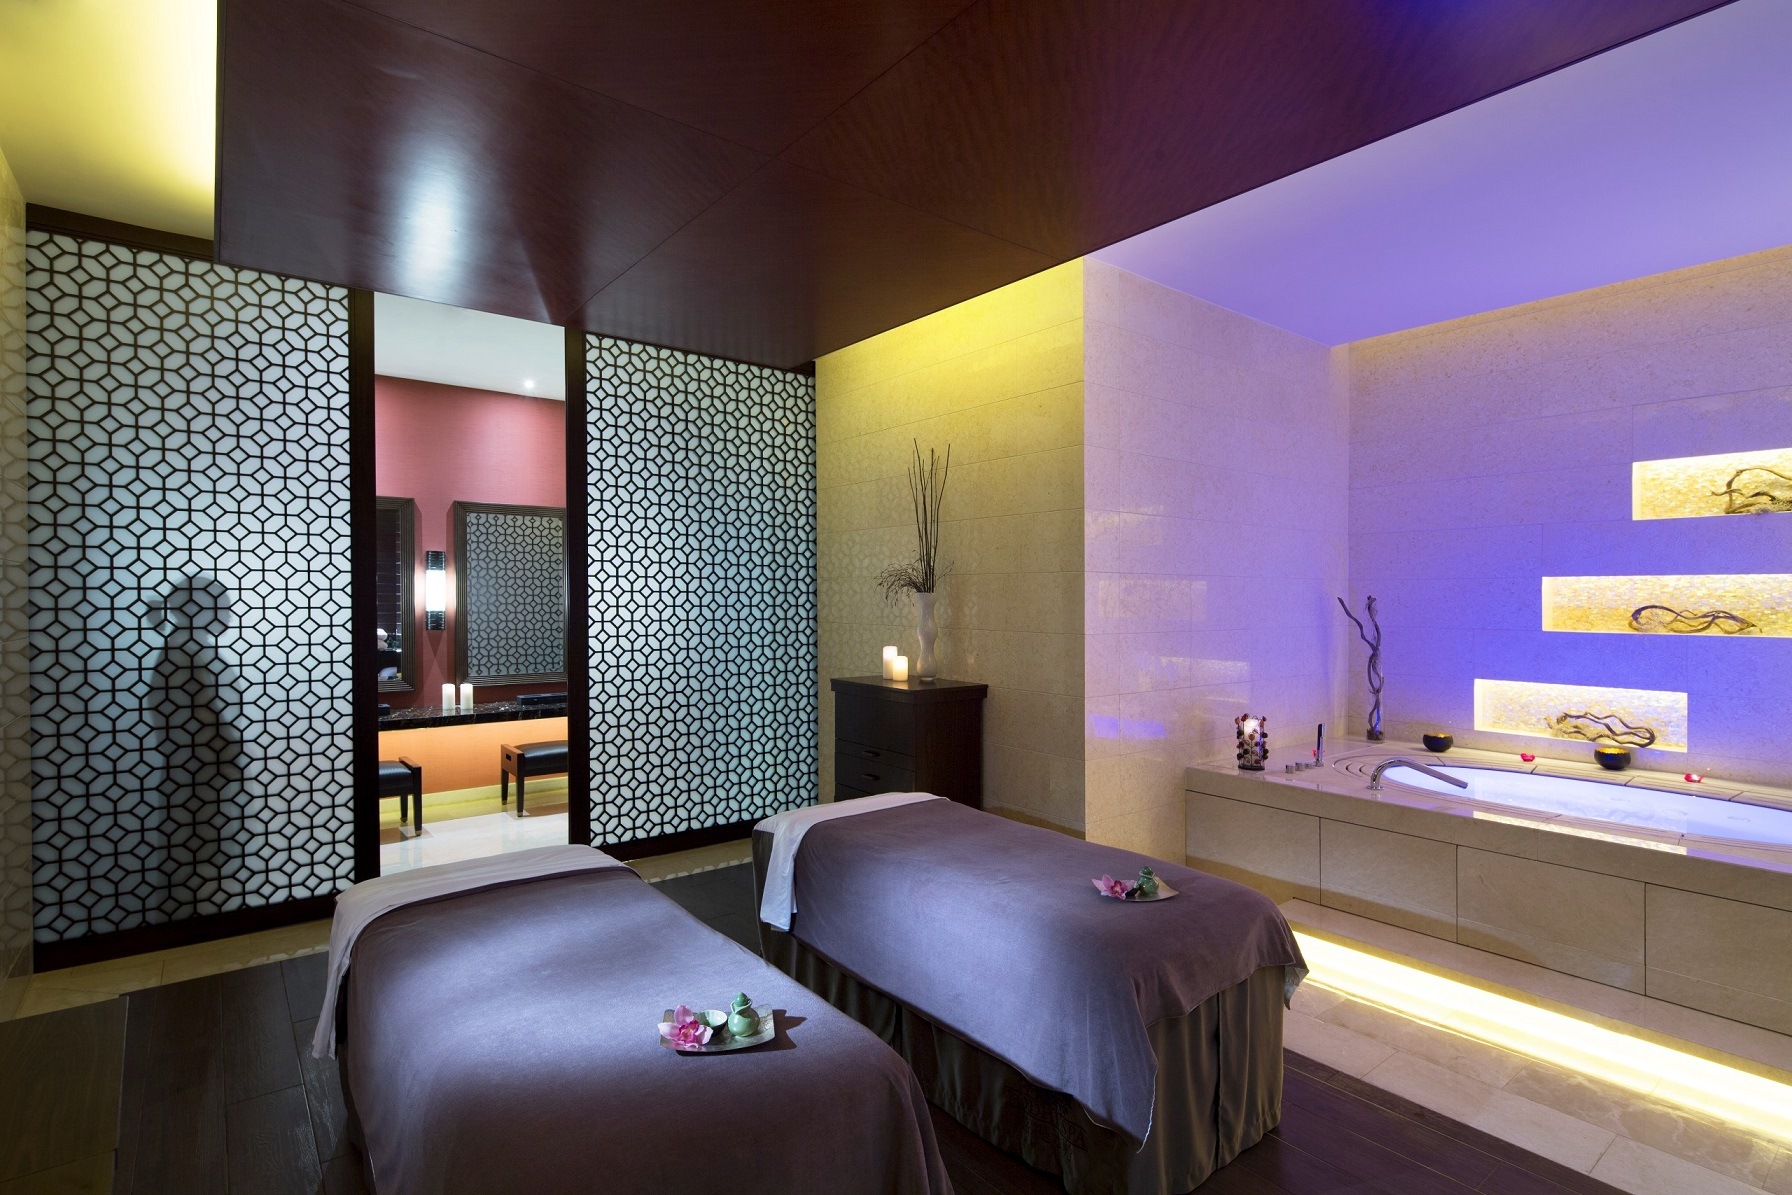 Bodhi Spa-Treatment Room